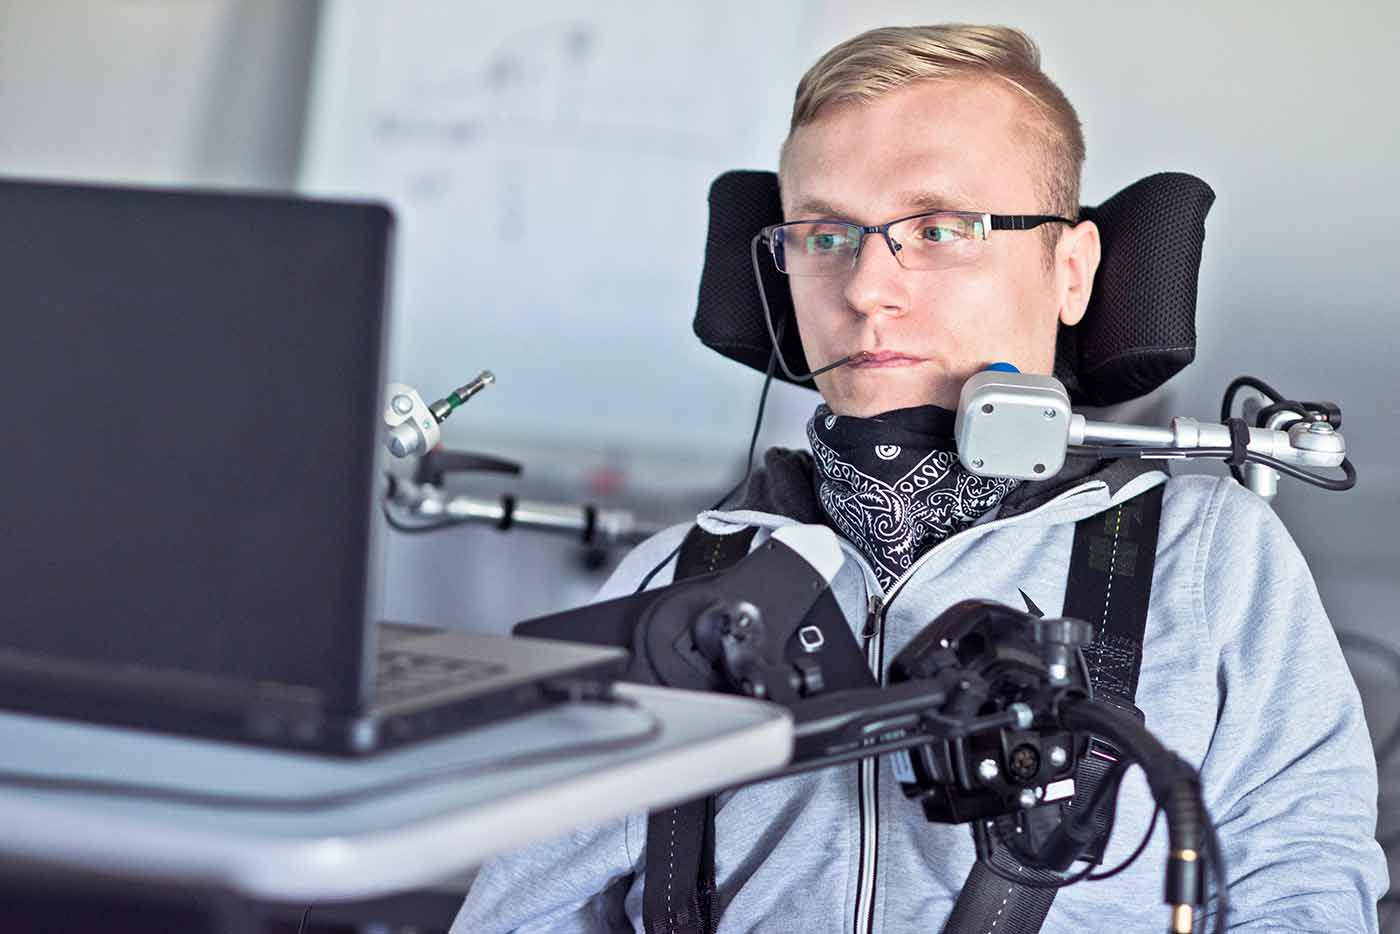 Disabled Man Using Computer with Assistive Devices